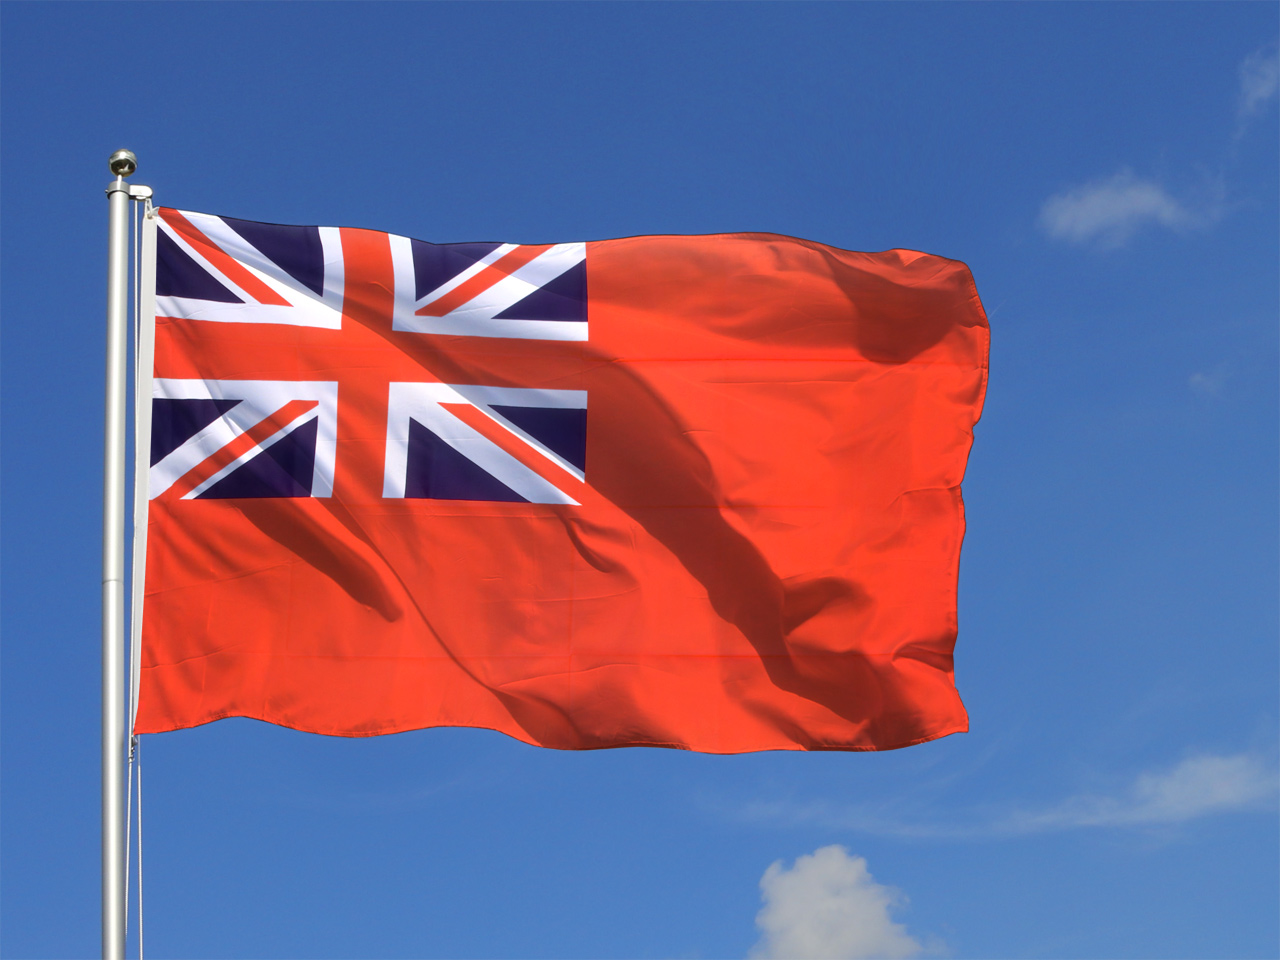 Red Ensign Flag For Sale Buy Online At Royal Flags